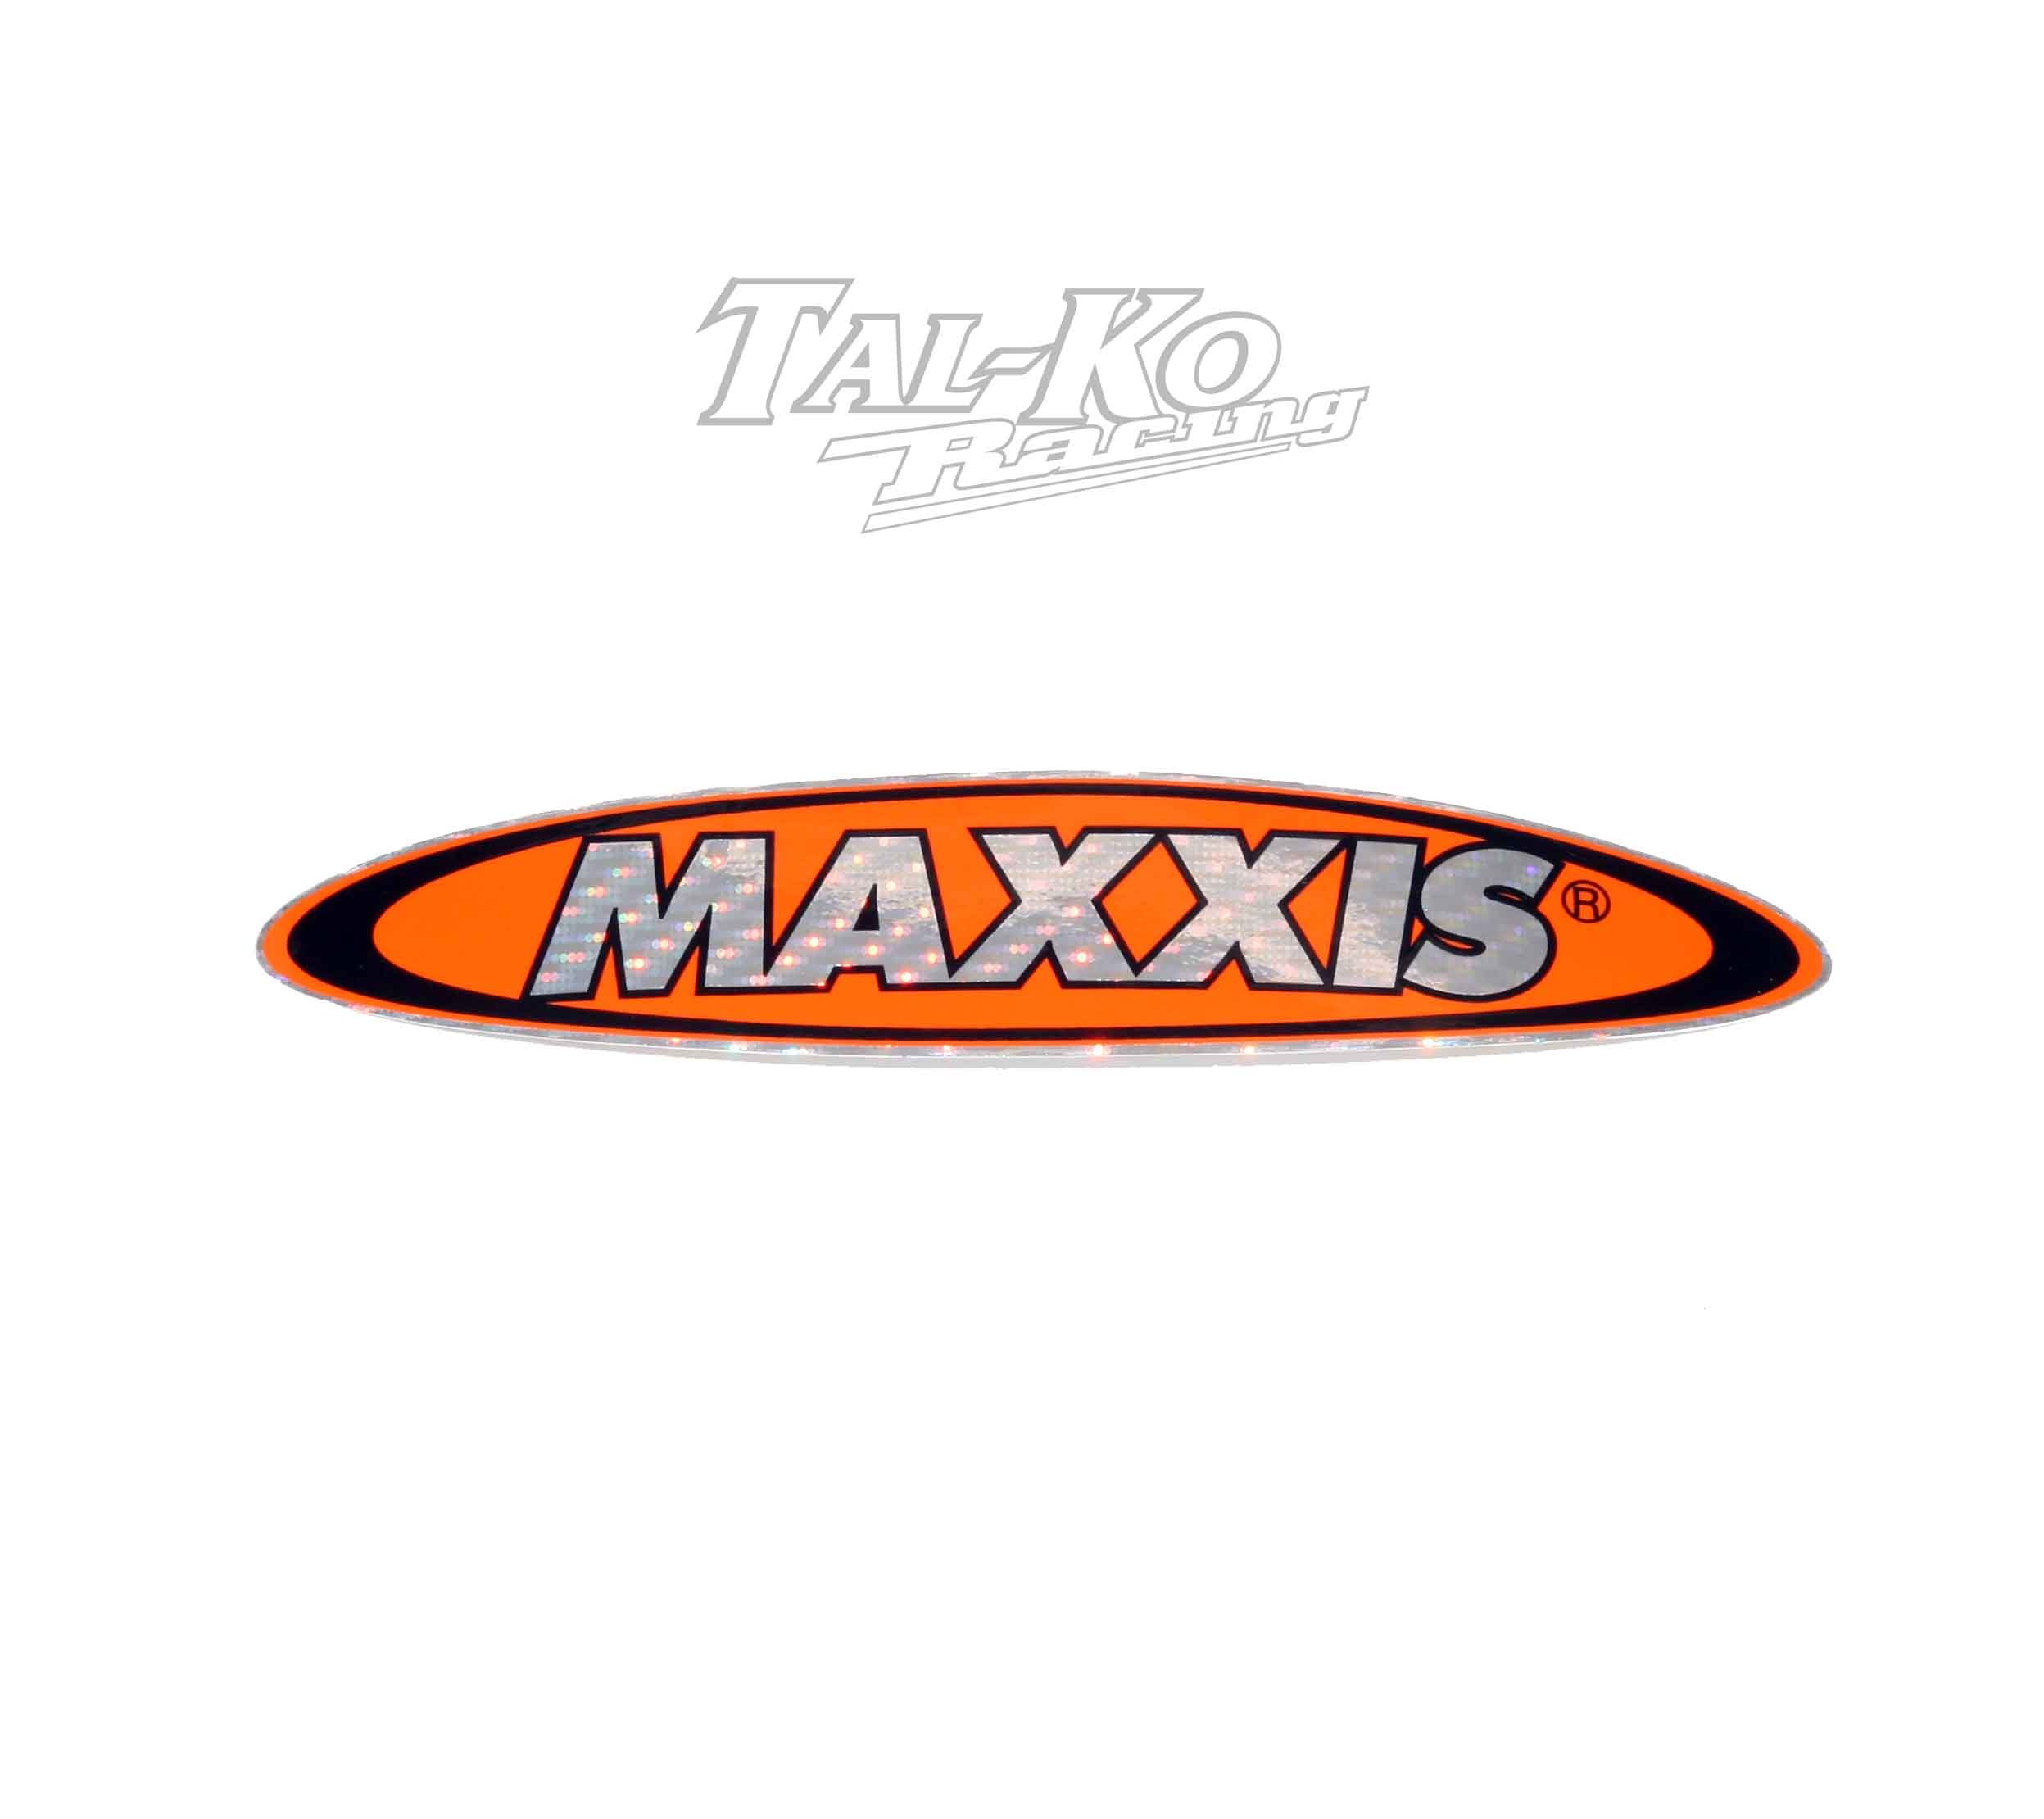 MAXXIS TYRE STICKER DECAL 150 x 30  SPARKLE